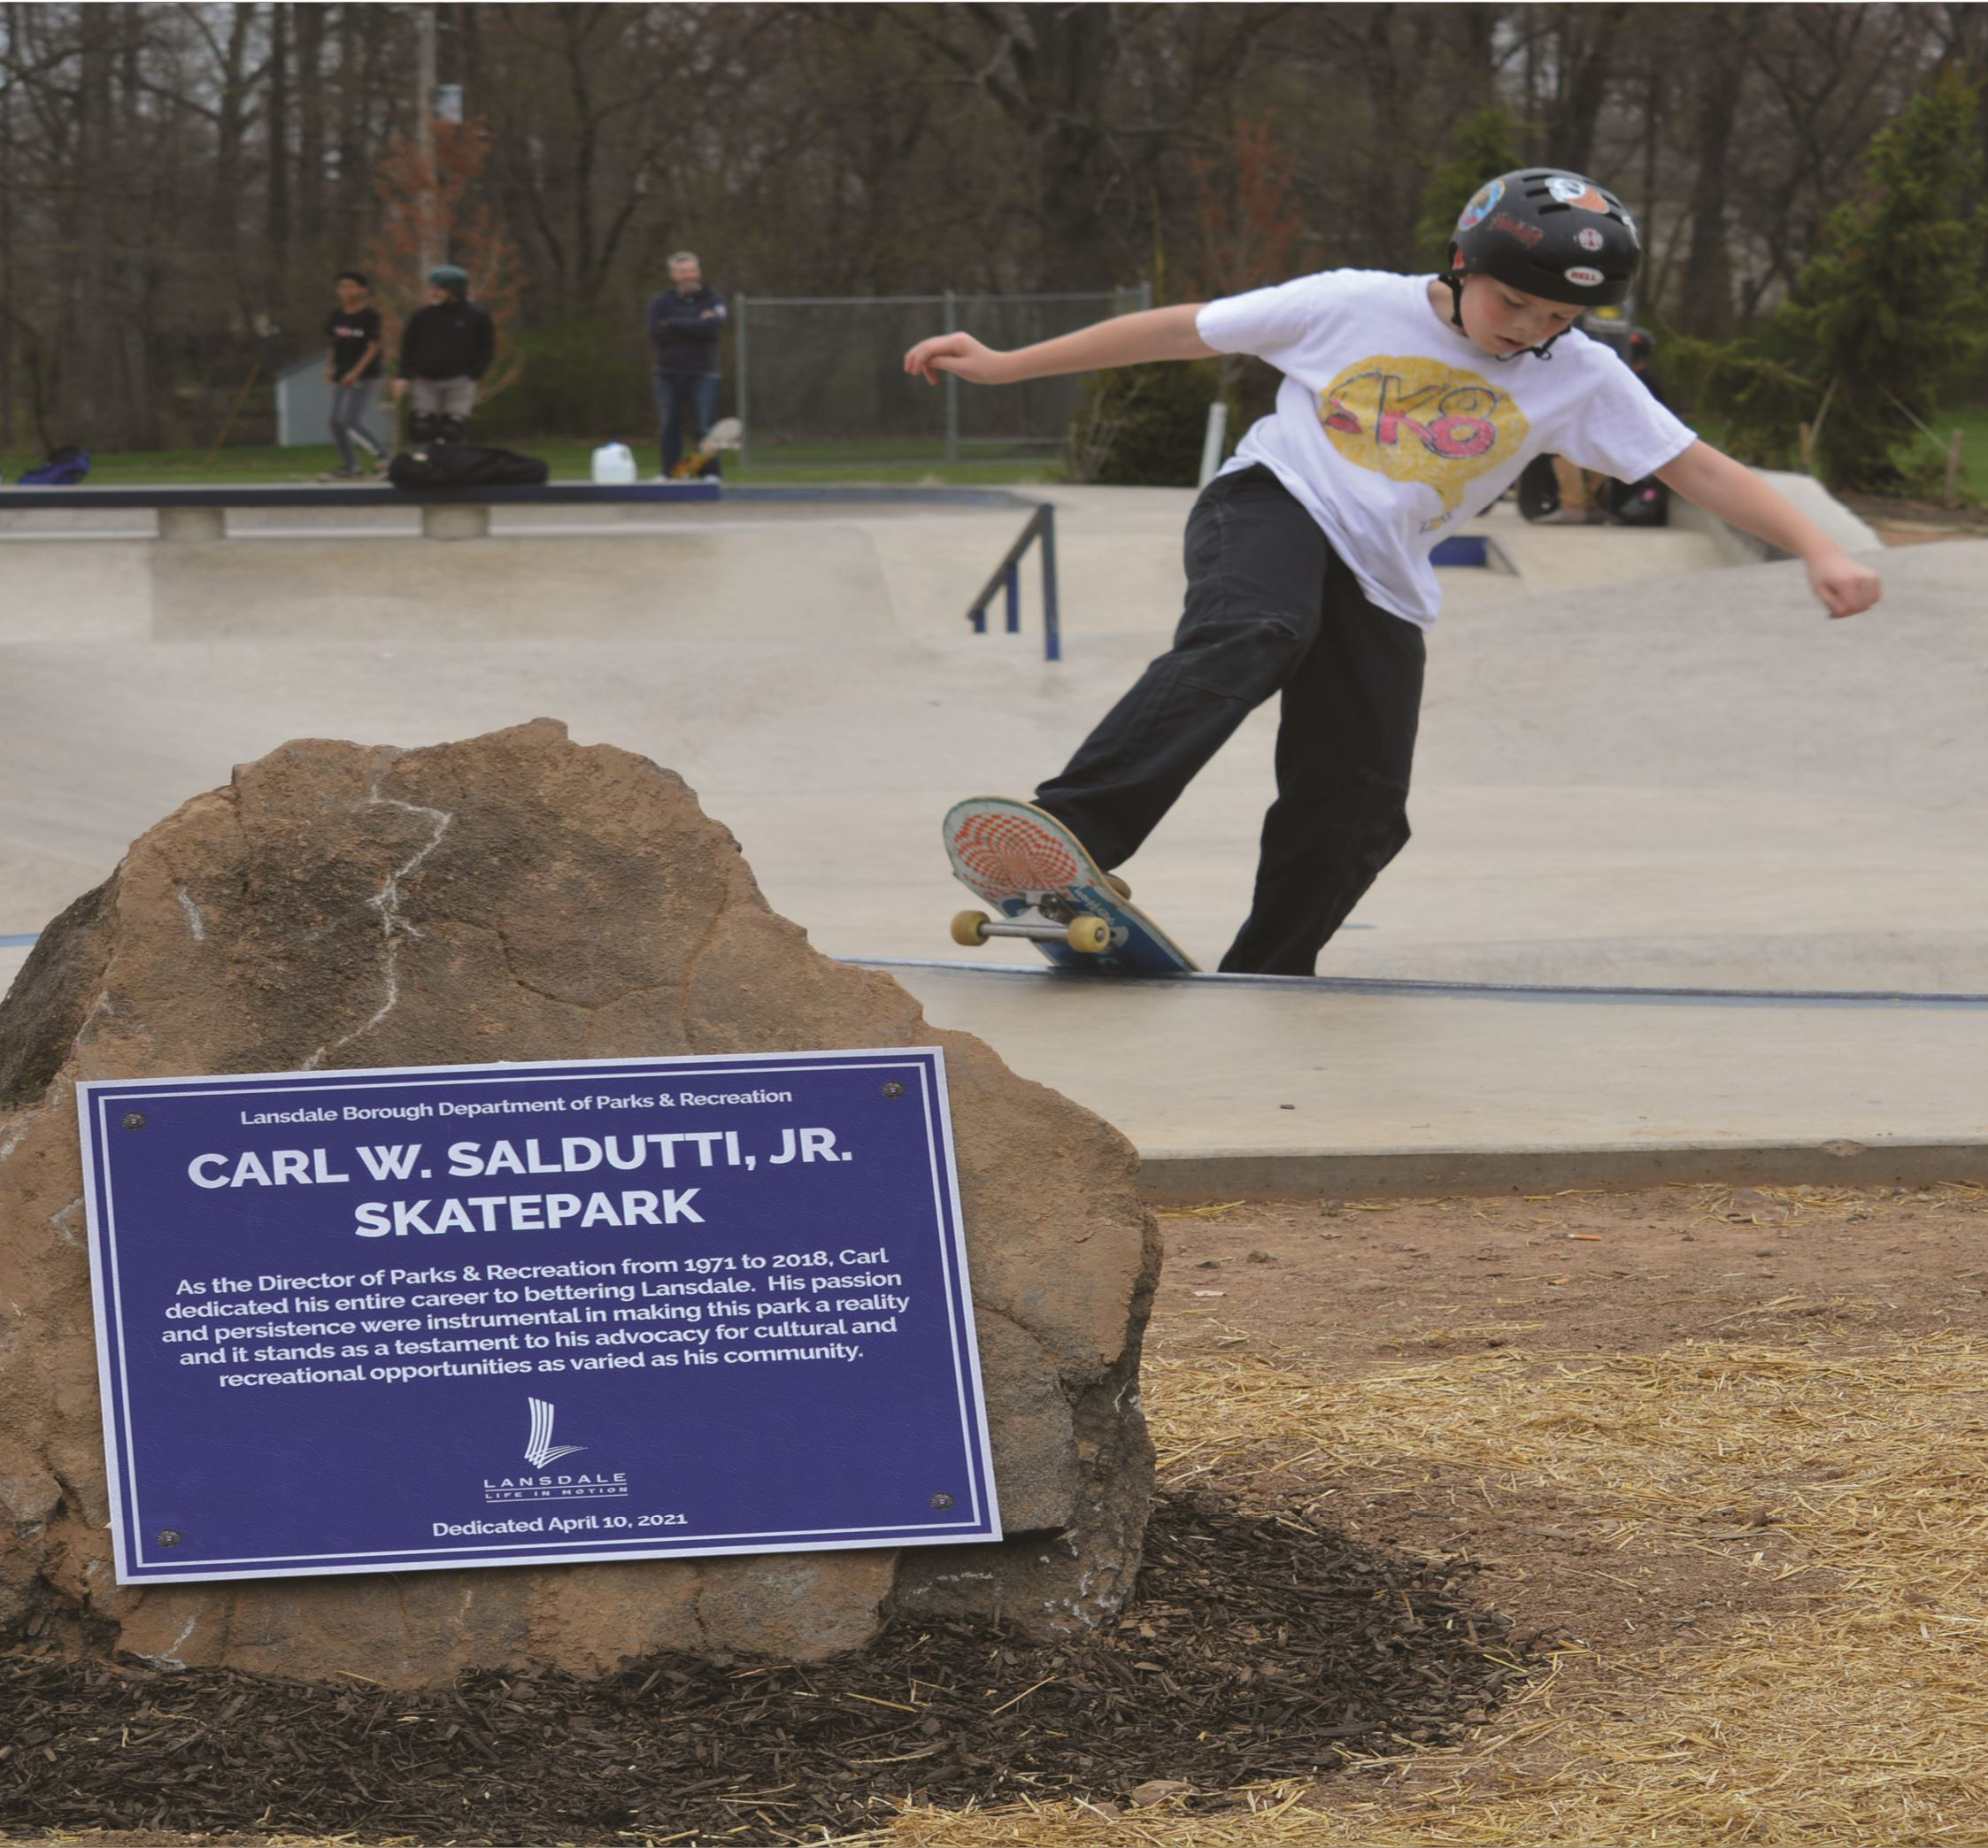 Skatepark Dedicated 2021